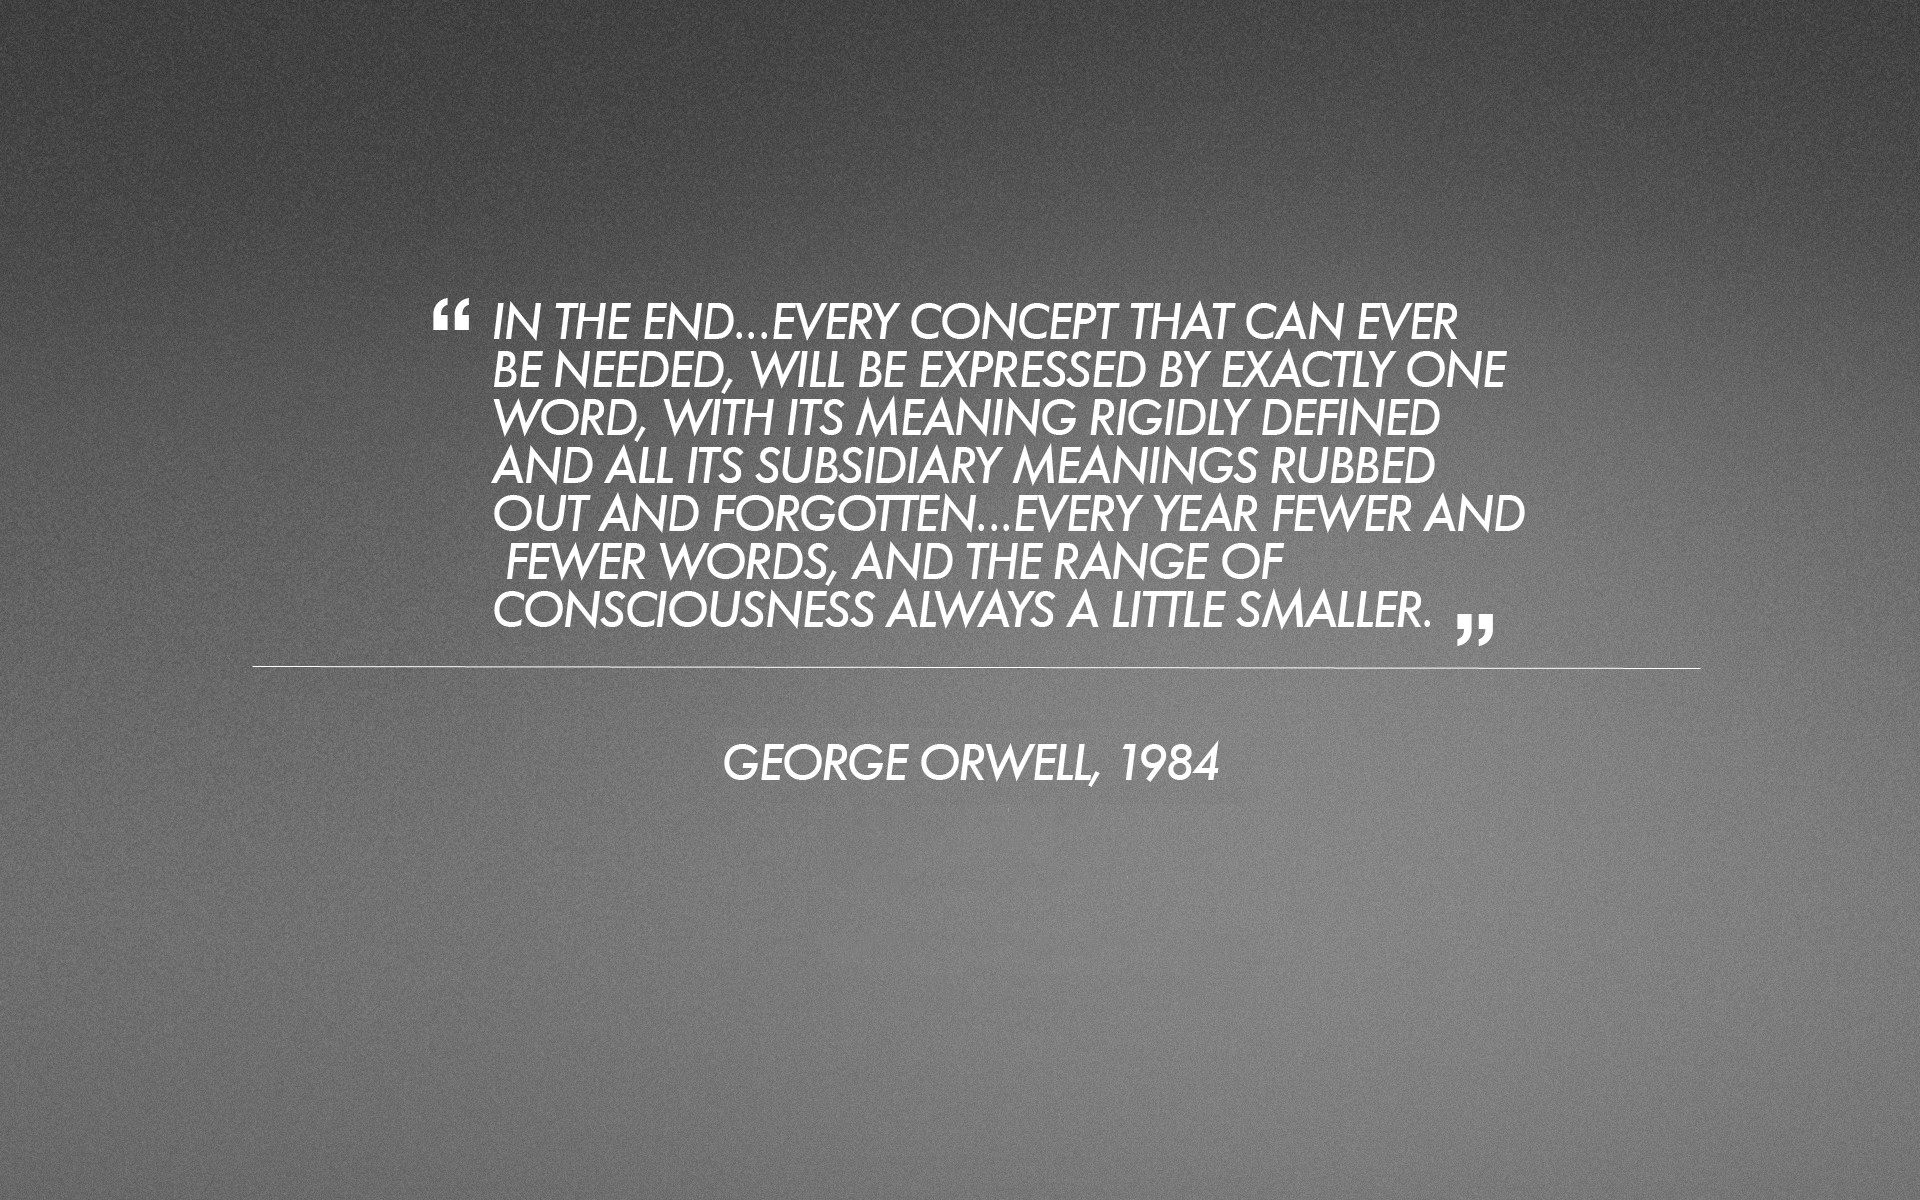 important quotes of 1984 by george 1984 by george orwell 📚🤓 1984 by george orwell 📚🤓 1984 by george orwell, quotes, books, inspiration, unity.